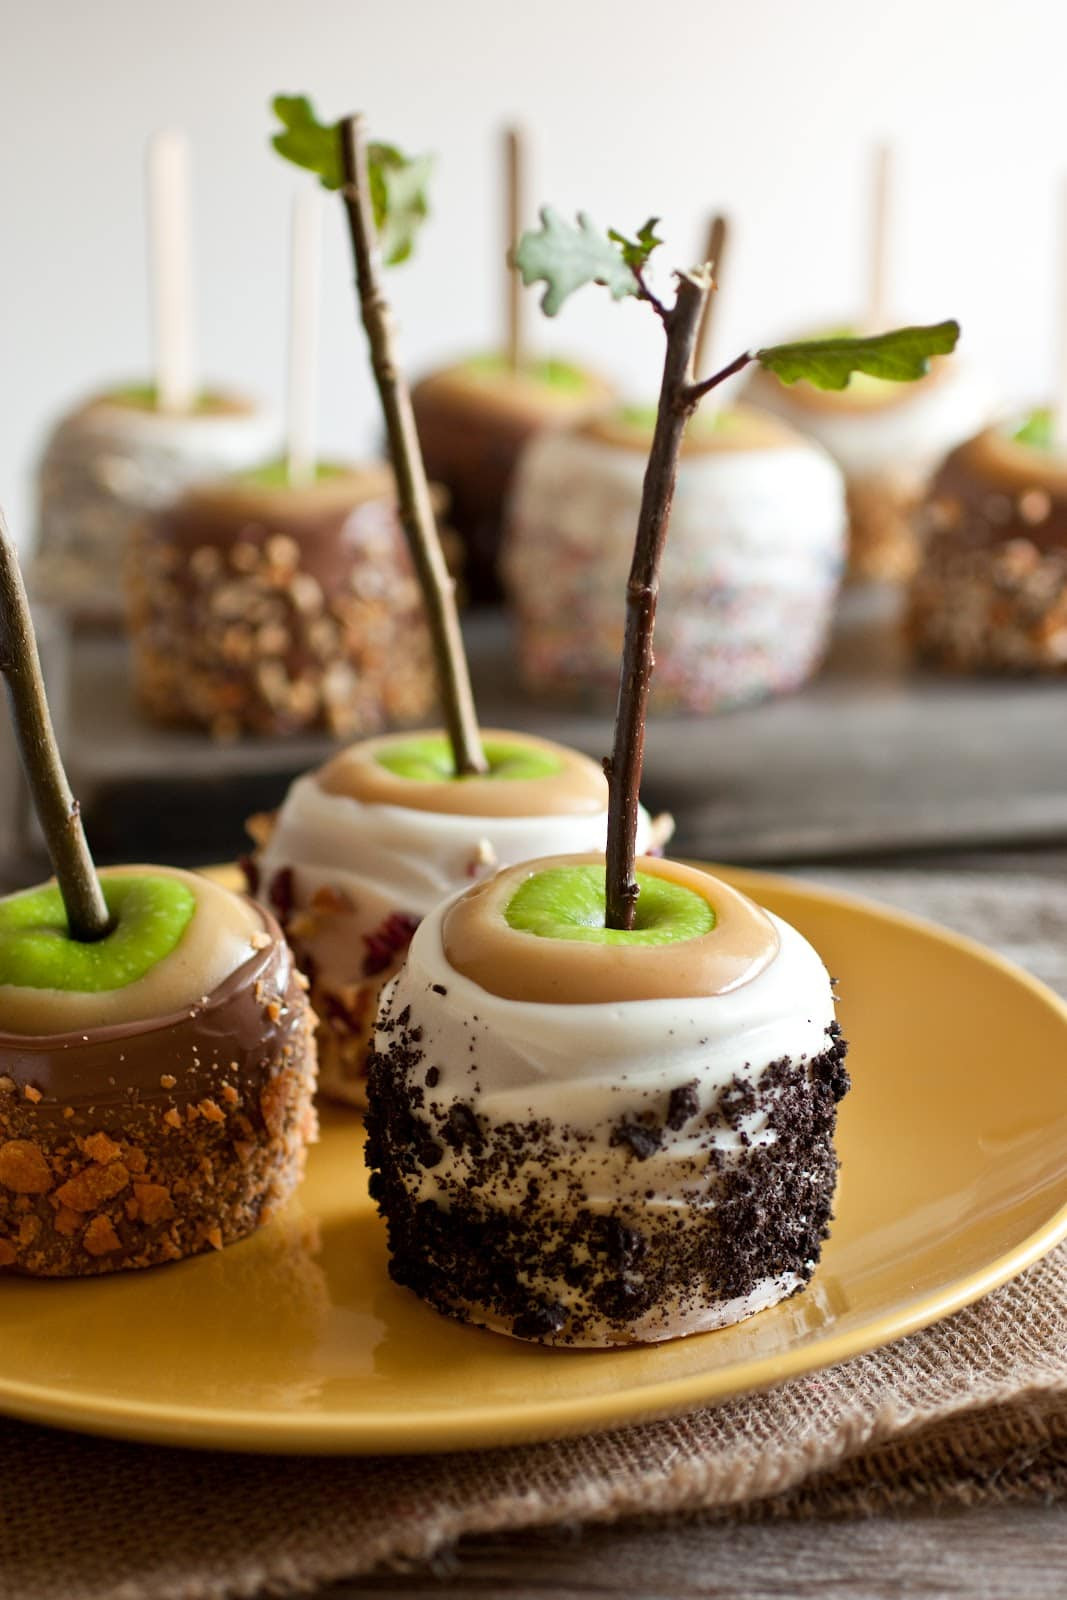 Apple Recipes For Fall  Ultimate Caramel Apples A Favorite Fall Treat Cooking